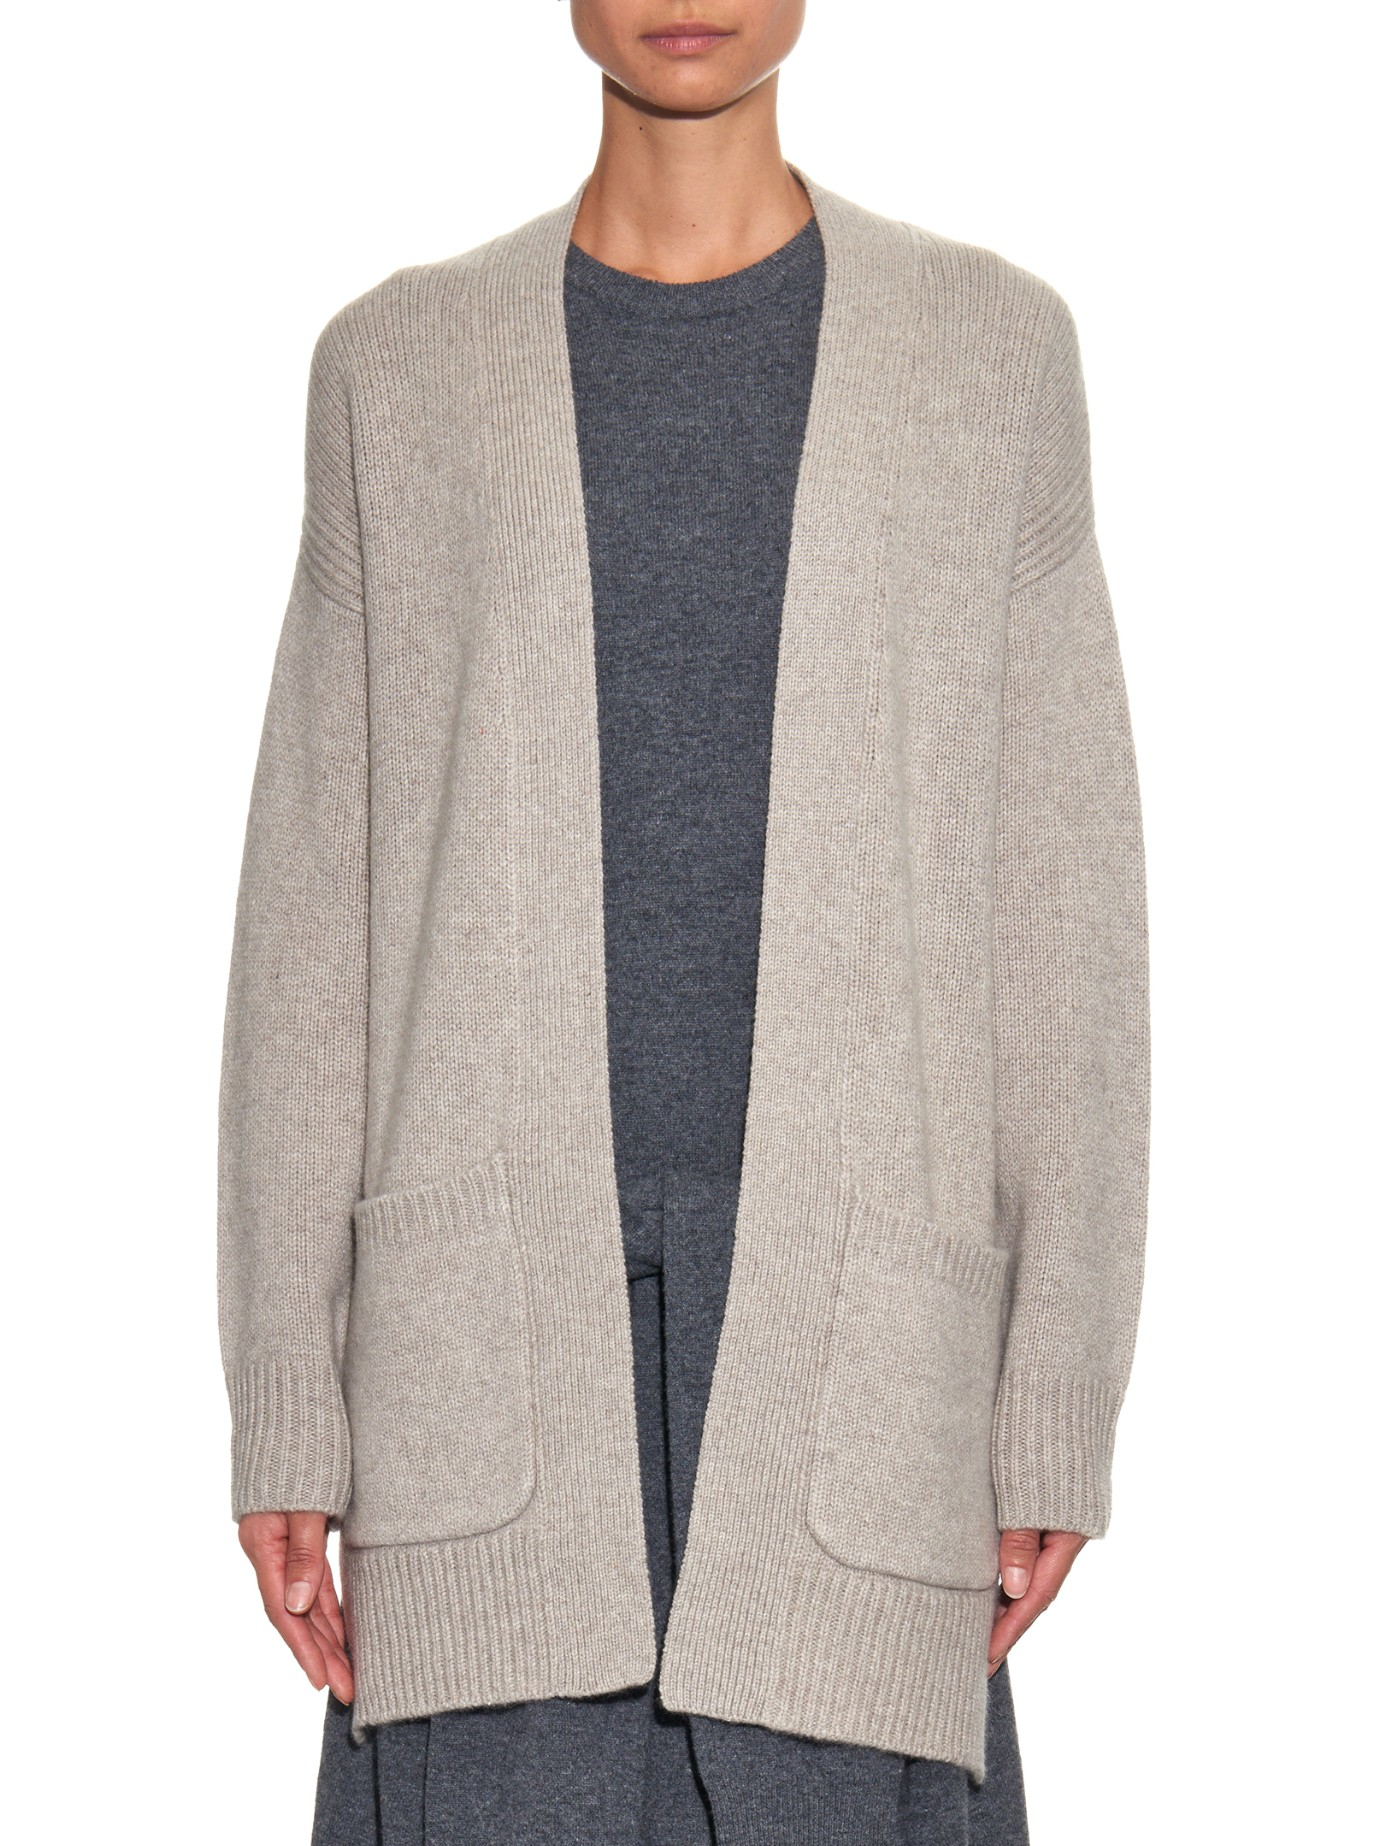 Joseph Open-front Cashmere Cardigan in Natural | Lyst